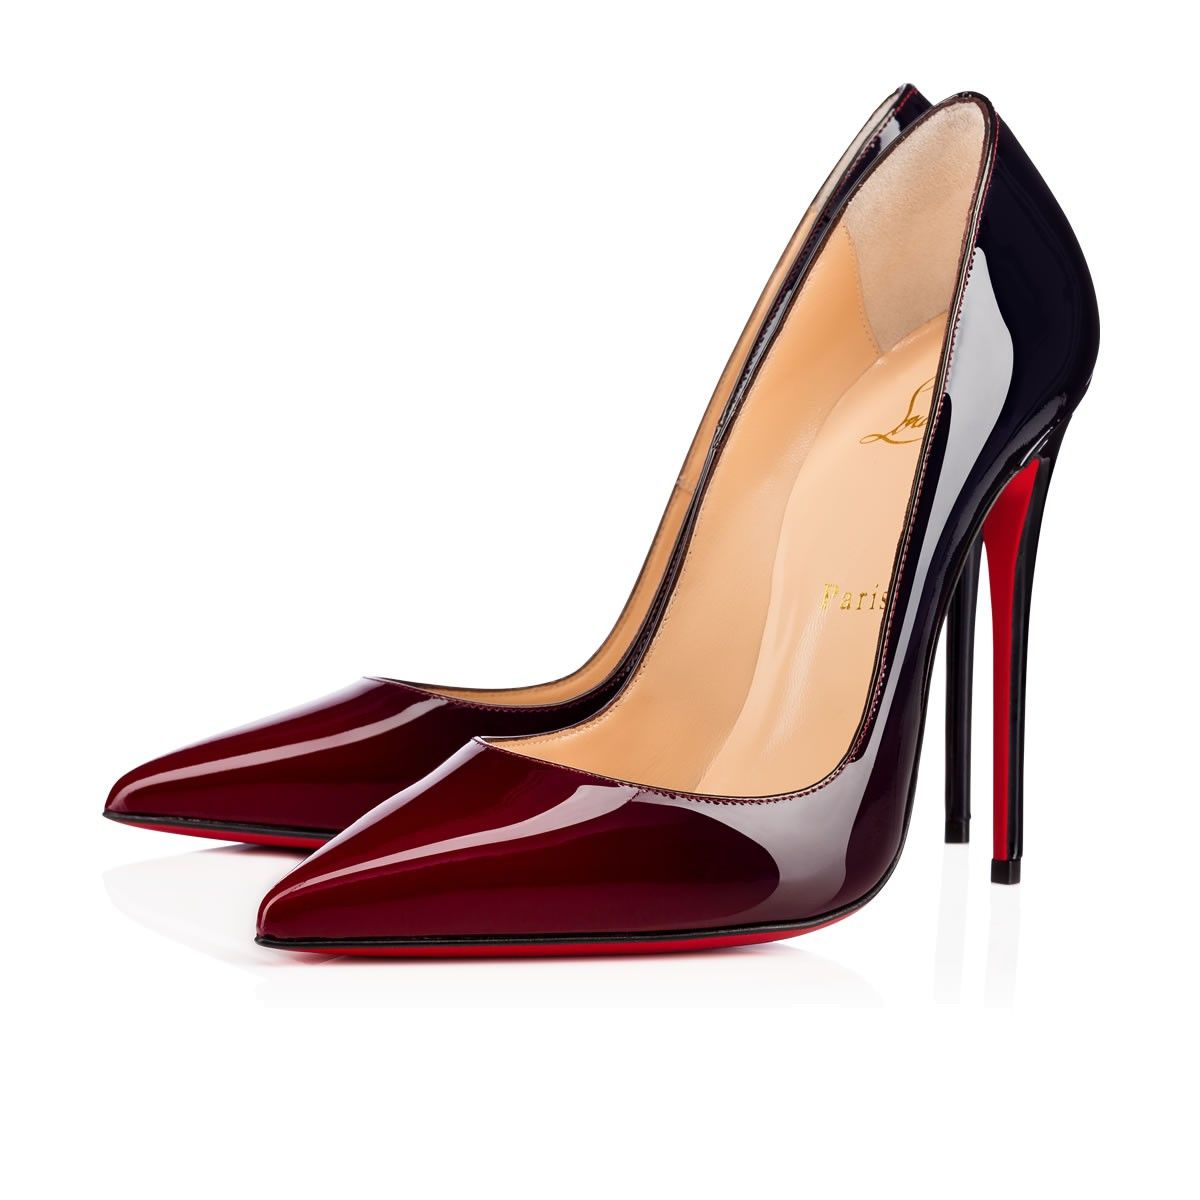 2748d82923db Women s Black So Kate Patent Red Sole Pumps in 2018